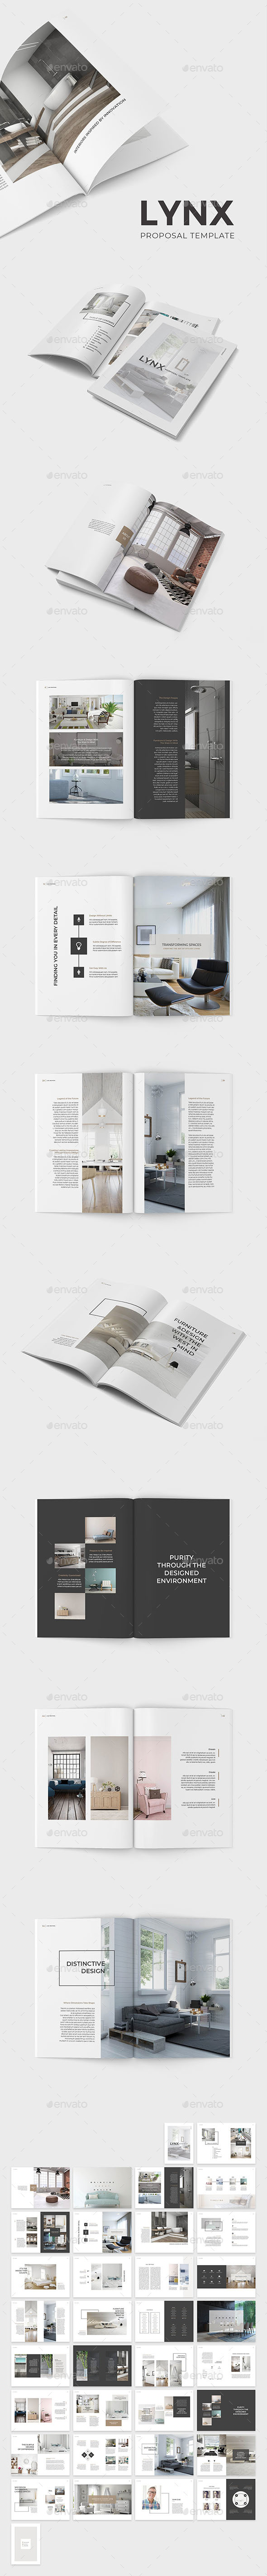 Lynx Proposal Template - Catalogs Brochures